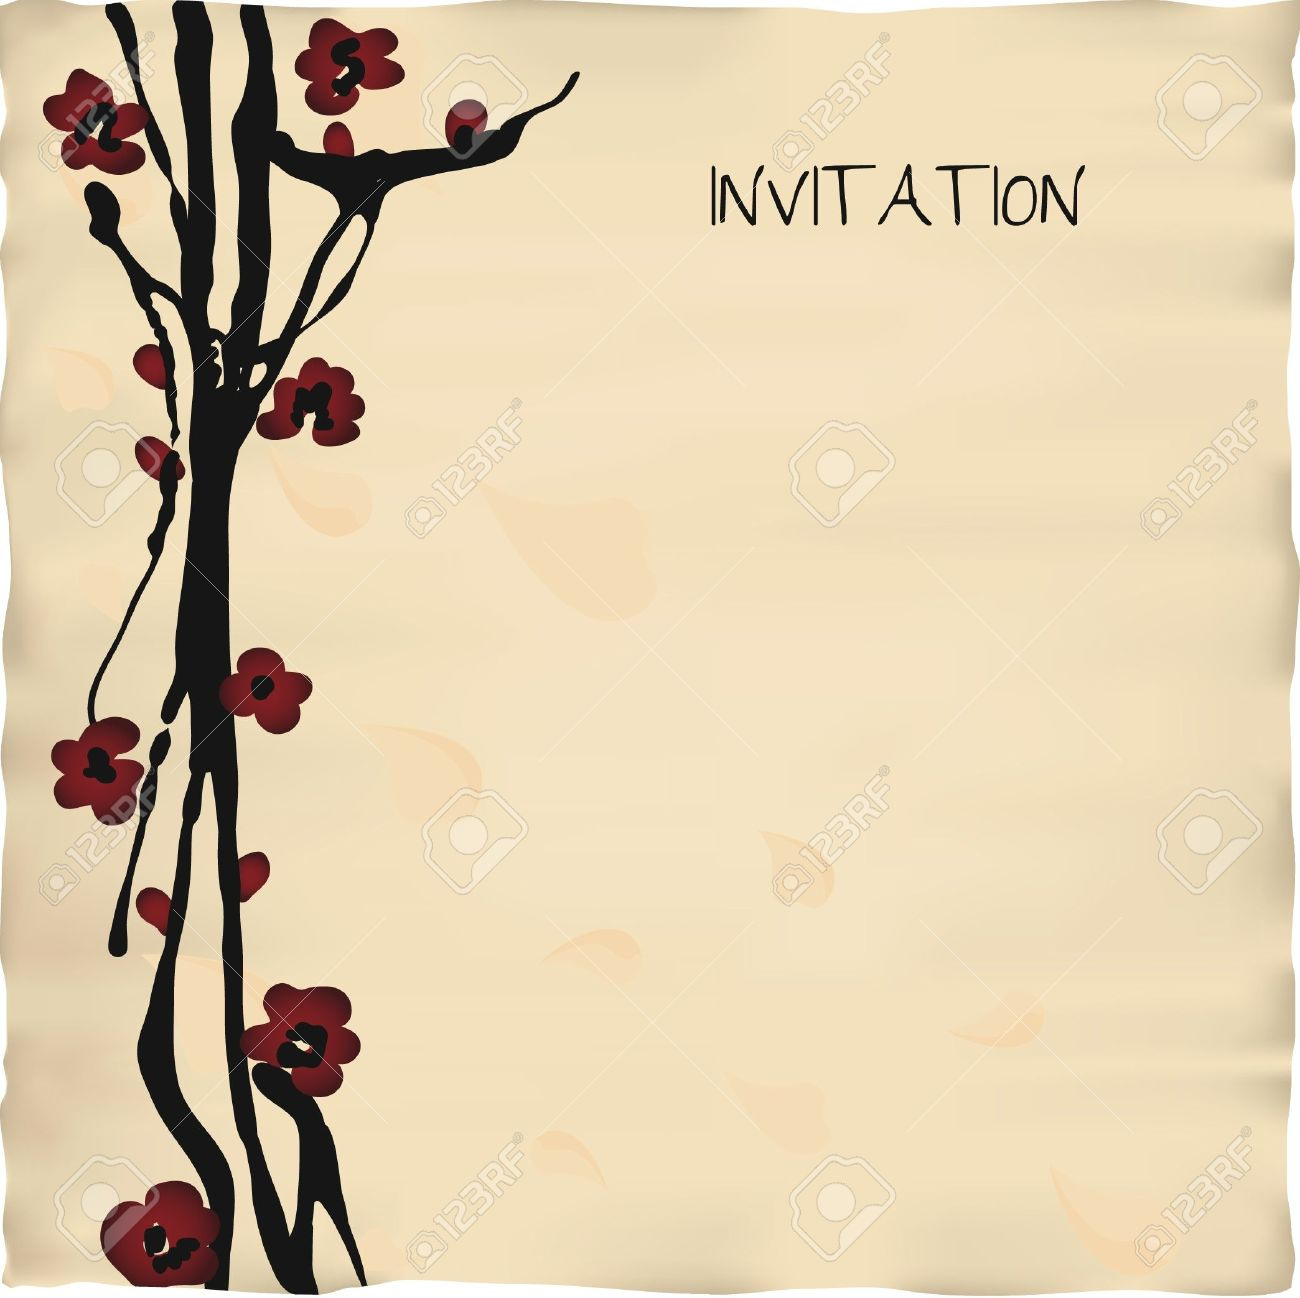 Japanese Or Chinese Style Invitation Card Template Royalty Free ...